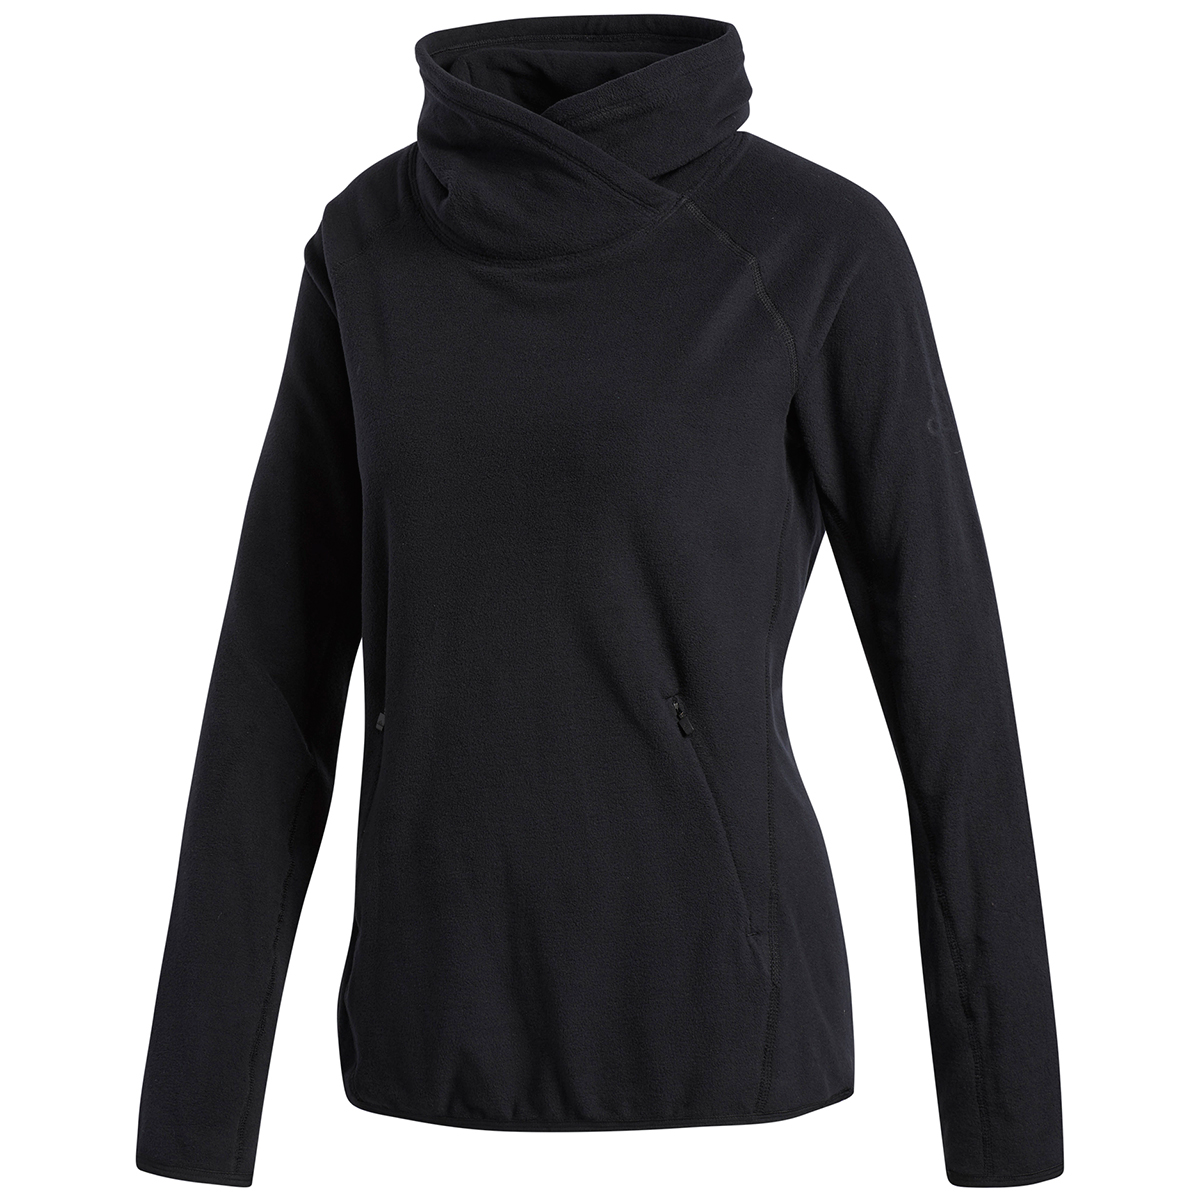 Adidas Women's Cover-Up Training Pullover - Black, L